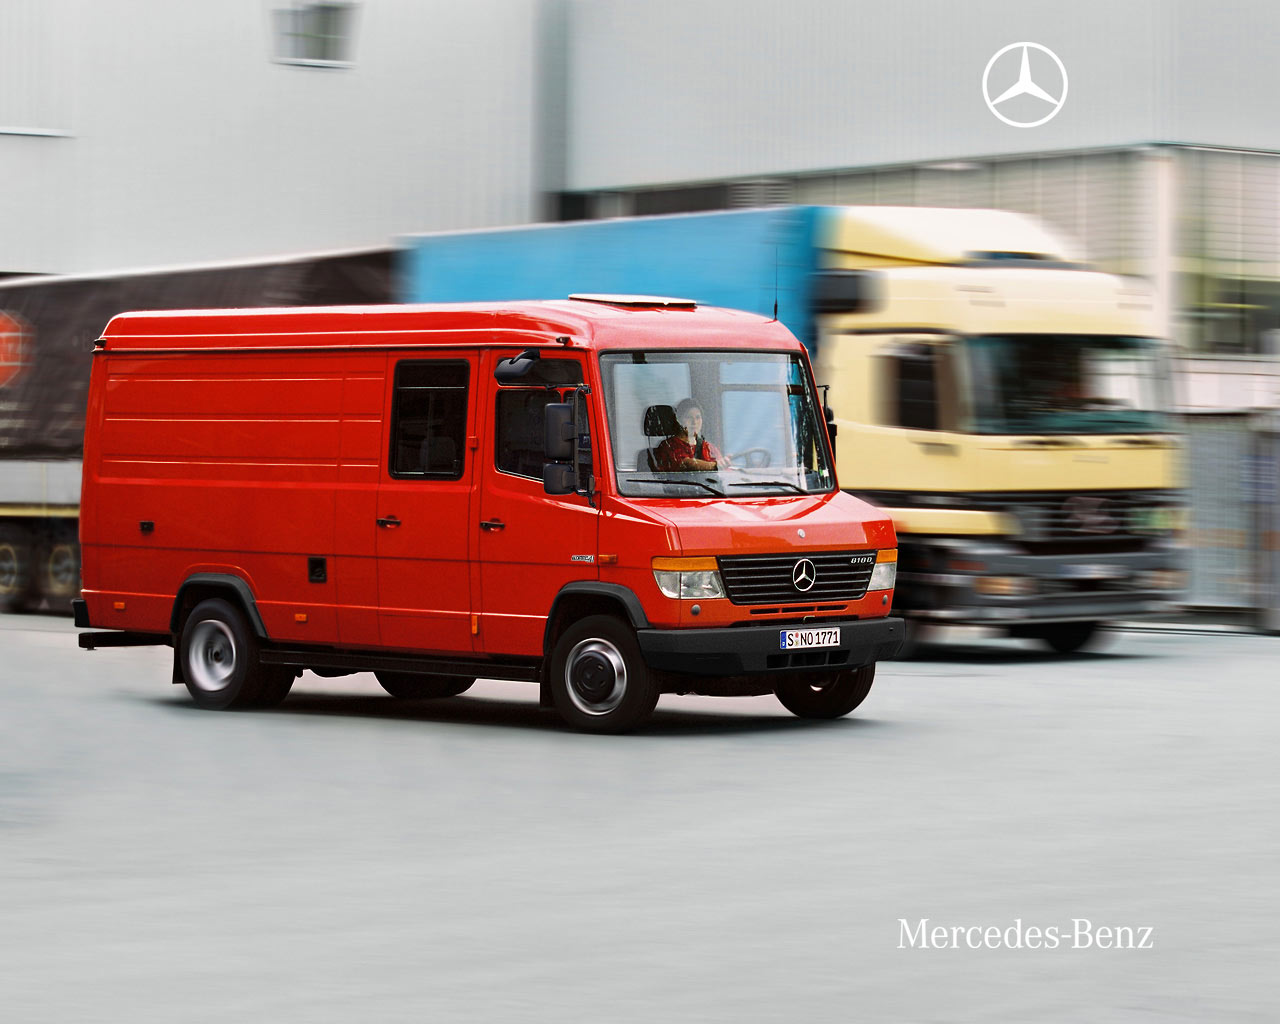 Mercedes benz vario commercial vehicles trucksplanet for Mercedes benz commercial trucks